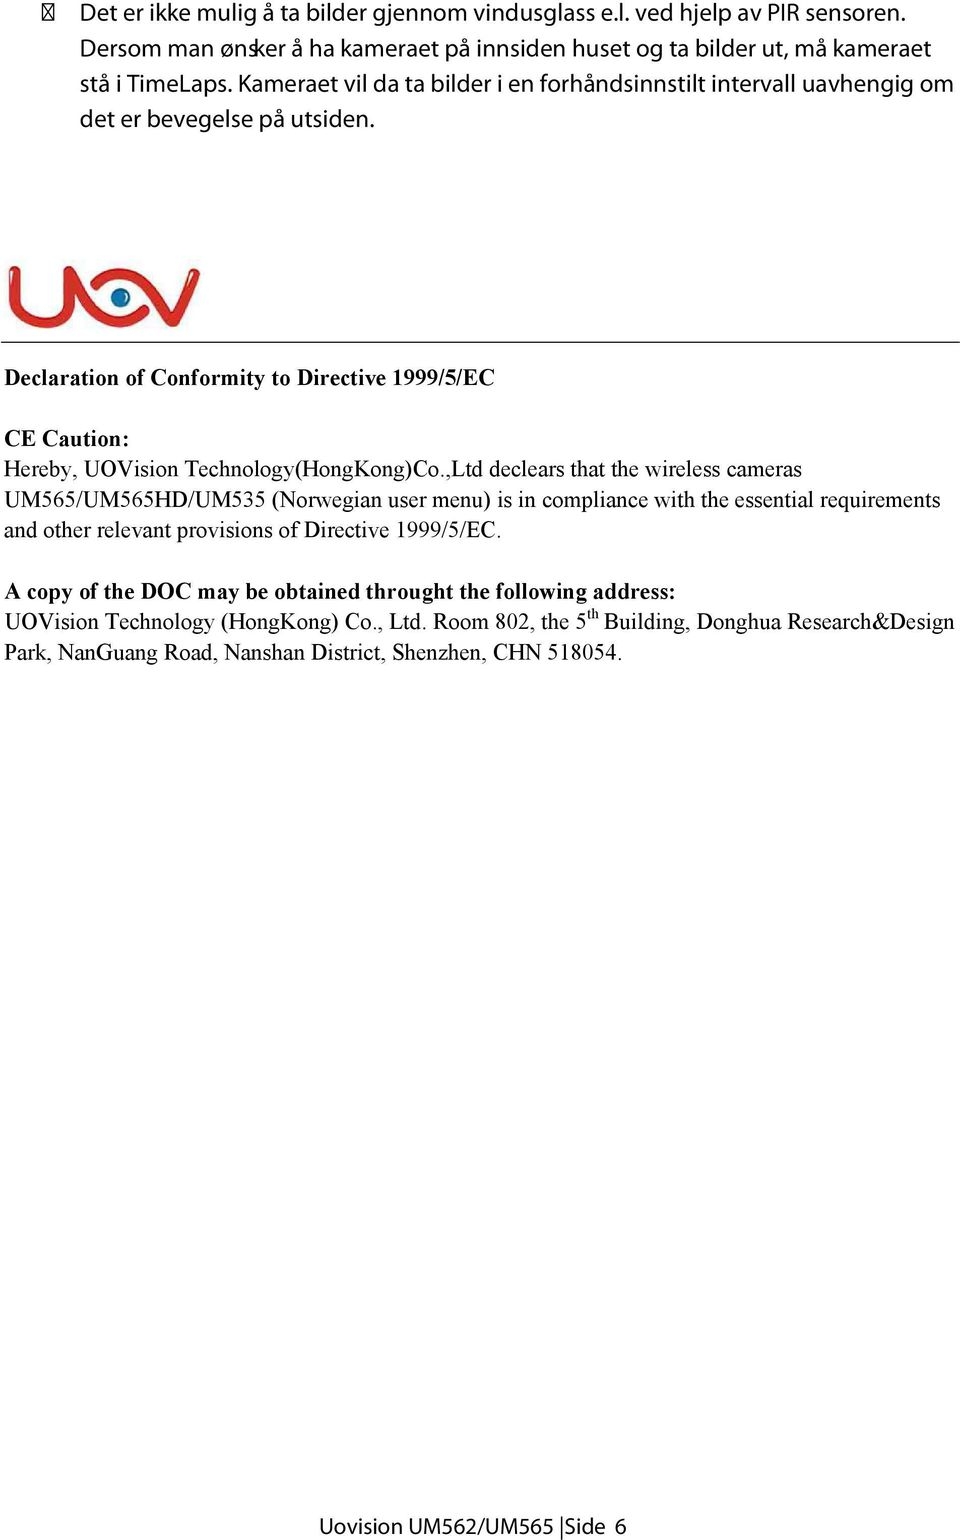 Declaration of Conformity to Directive 1999/5/EC CE Caution: Hereby, UOVision Technology(HongKong)Co.